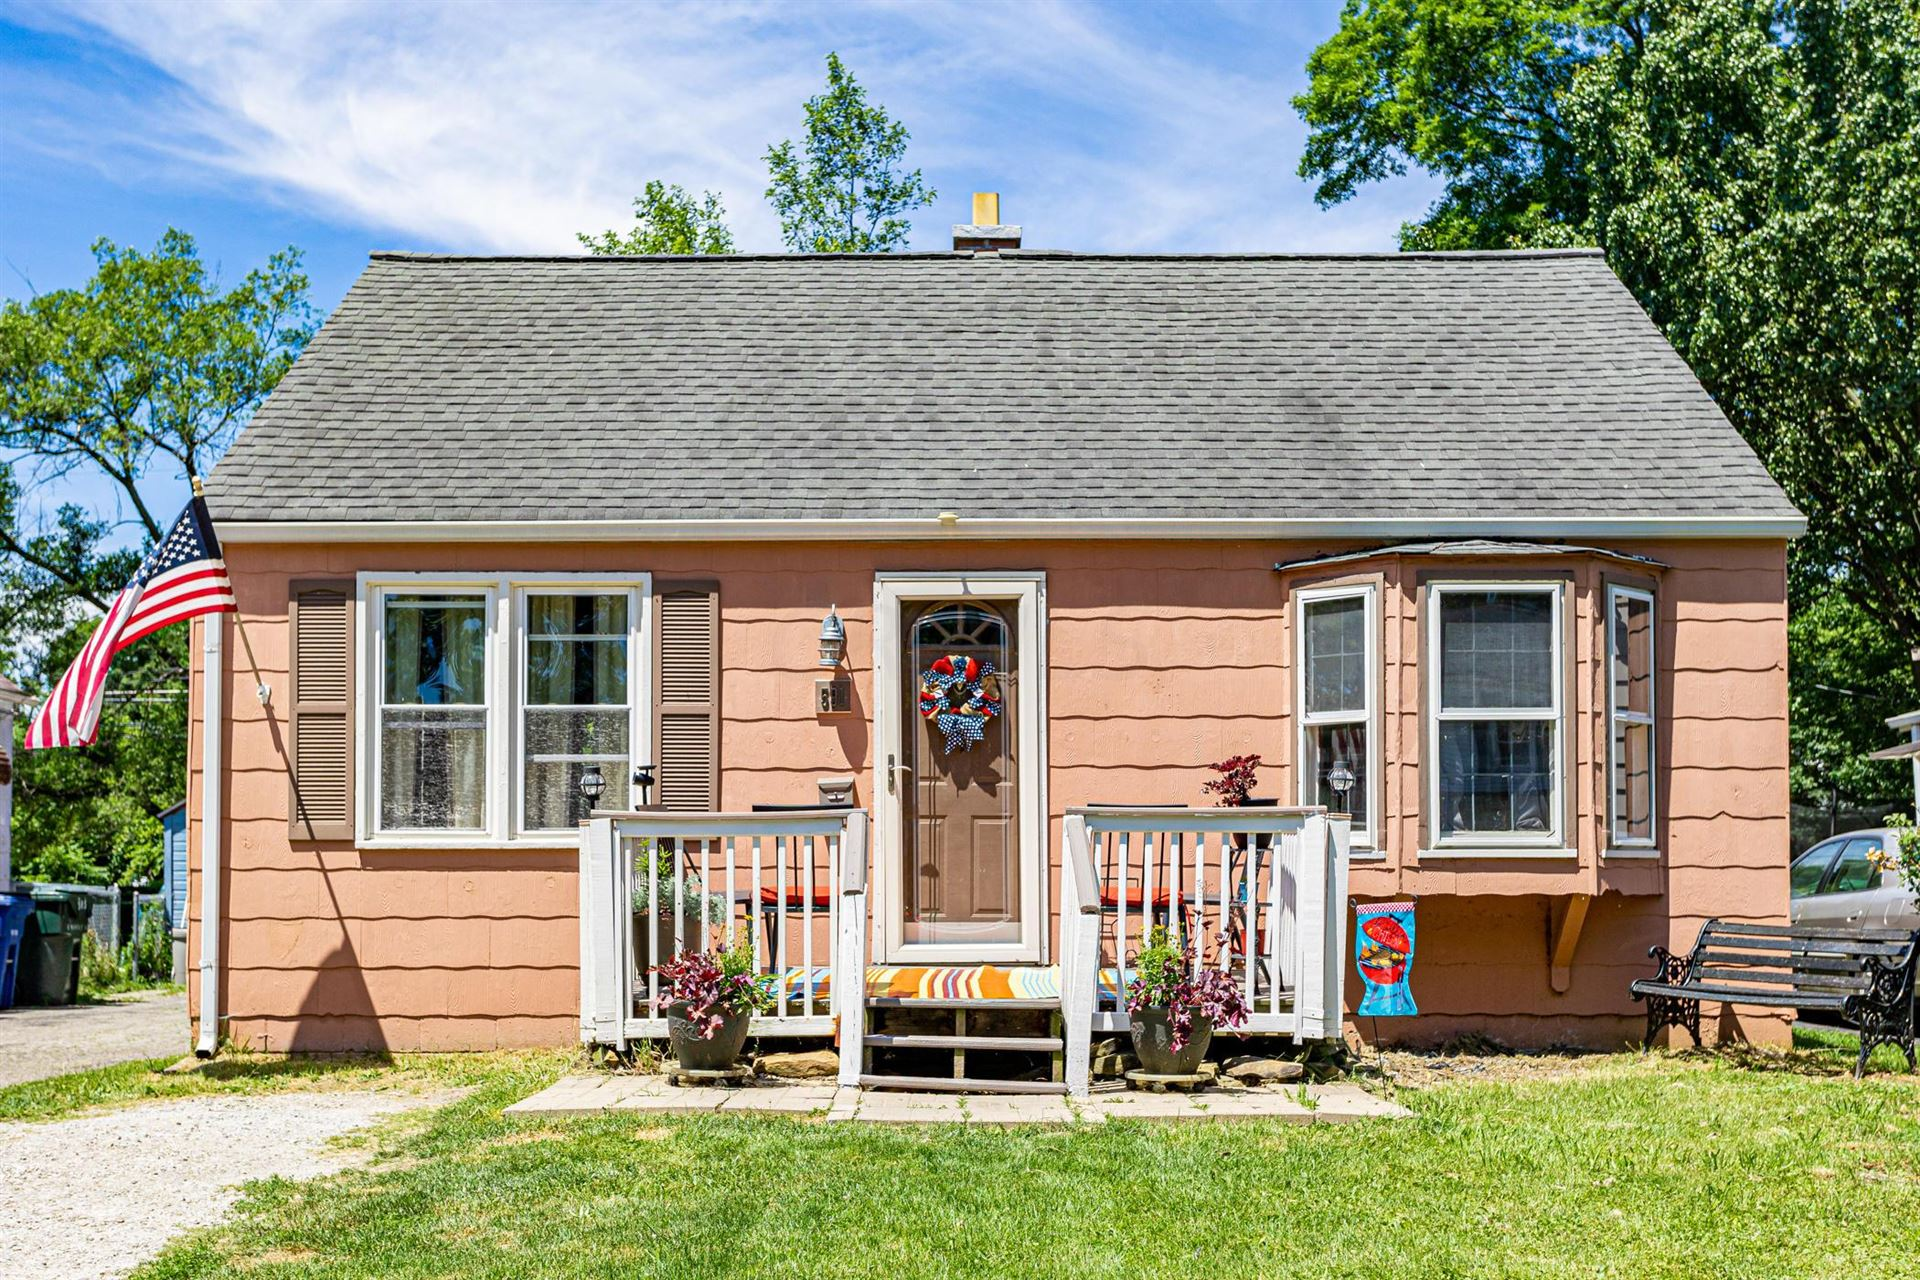 Photo for 591 S Waverly Street, Columbus, OH 43213 (MLS # 221020866)